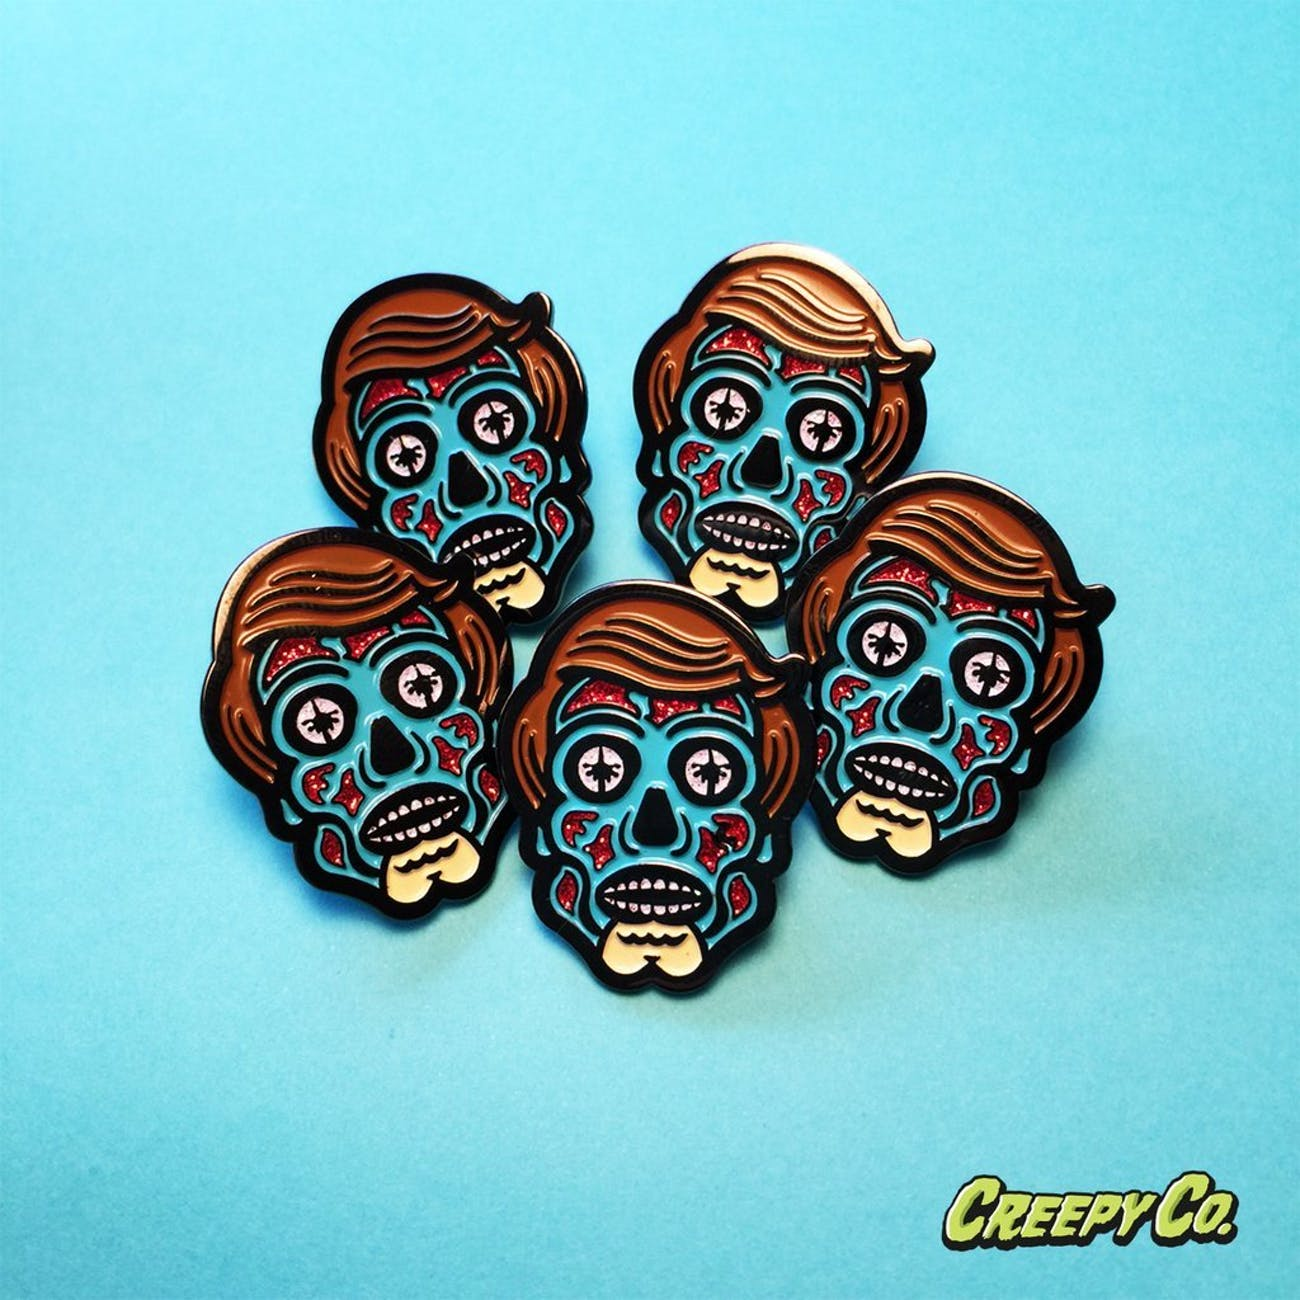 "Creepy Co.'s 'All Consuming Alien"" pin design based on John Carpenter's 'They Live.'"